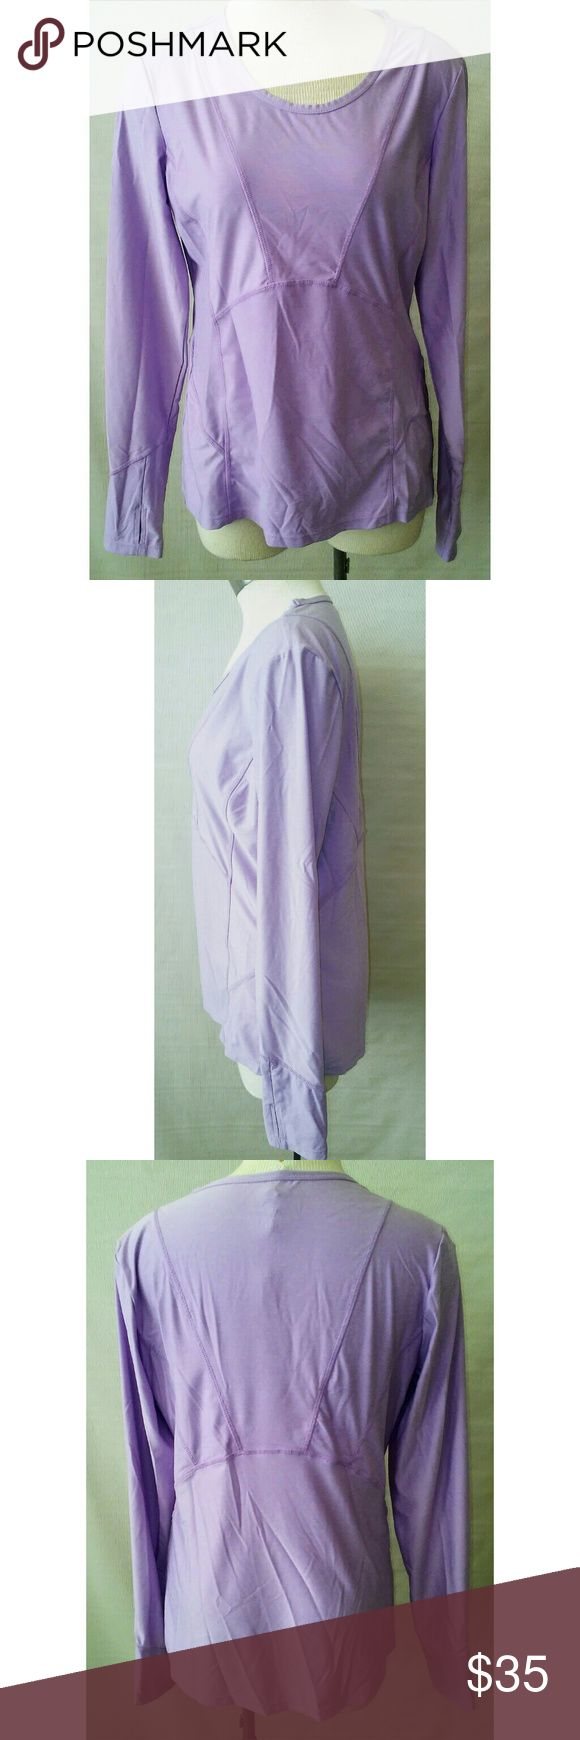 Athleta lavender long sleeve athletic top size M Whether you are running, doing yoga, golf or tennis, this versatile yet fashionable performance top is perfect. Designed and tested by women athletes for women athletes. Athleta Tops Tees - Long Sleeve